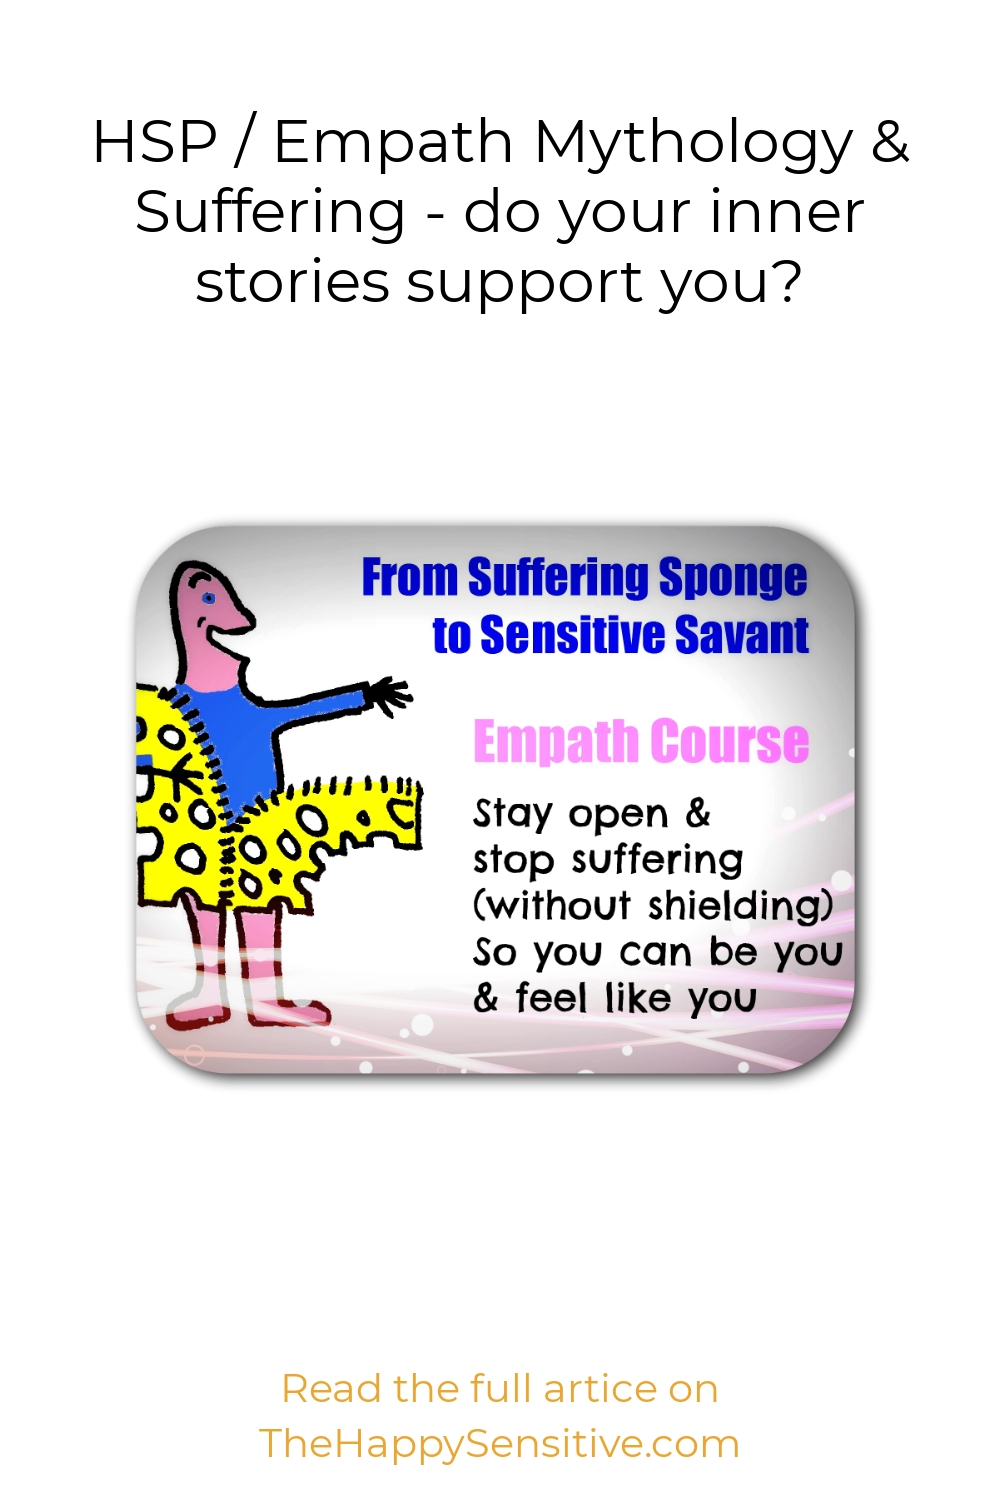 HSP / Empath Mythology & Suffering – do your inner stories support you?